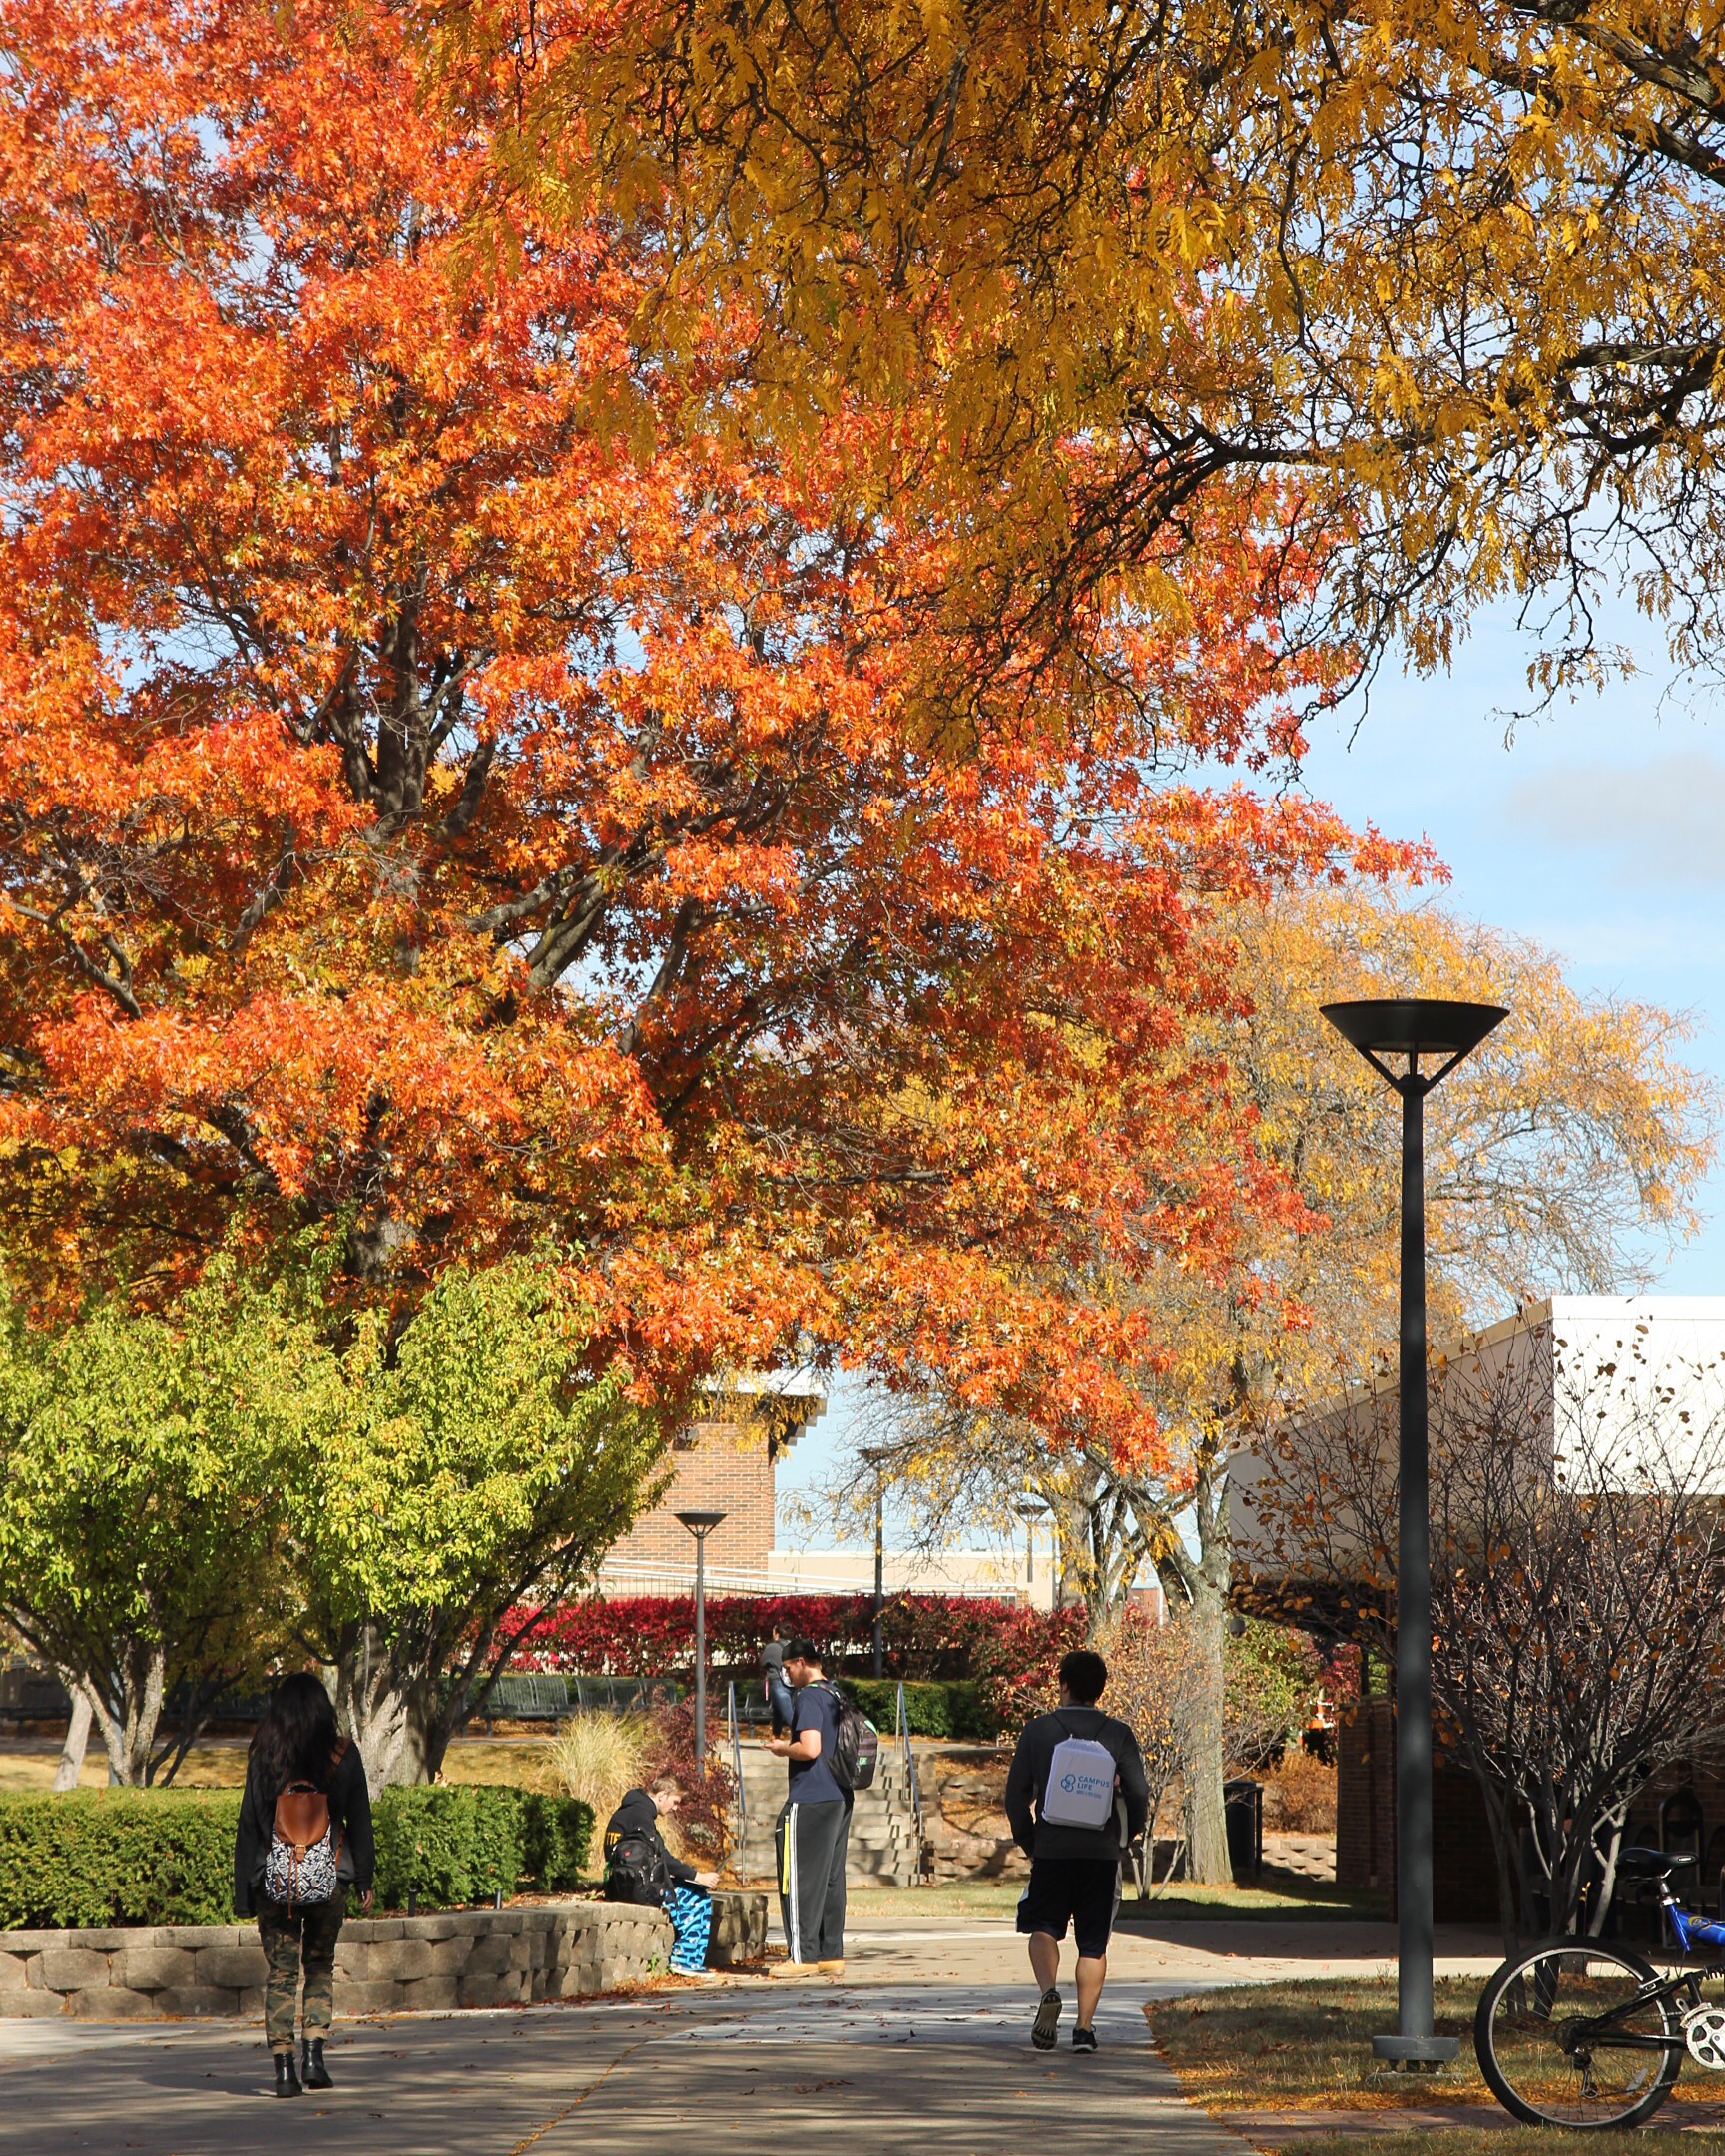 Students on campus in autumn